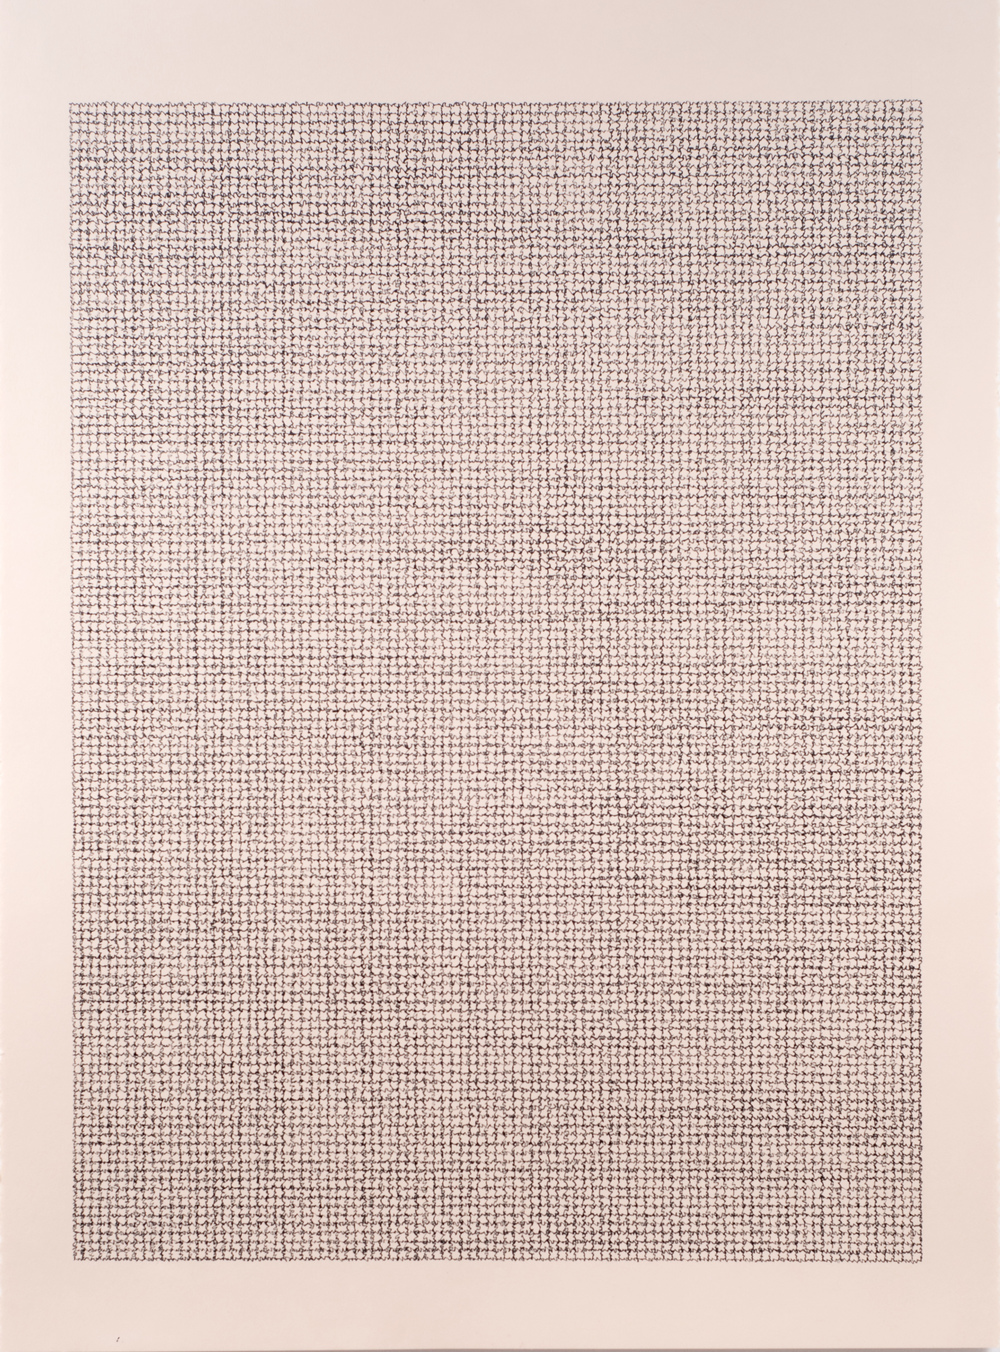 Untitled , 2013 / Ink on paper / 76cm x 56cm